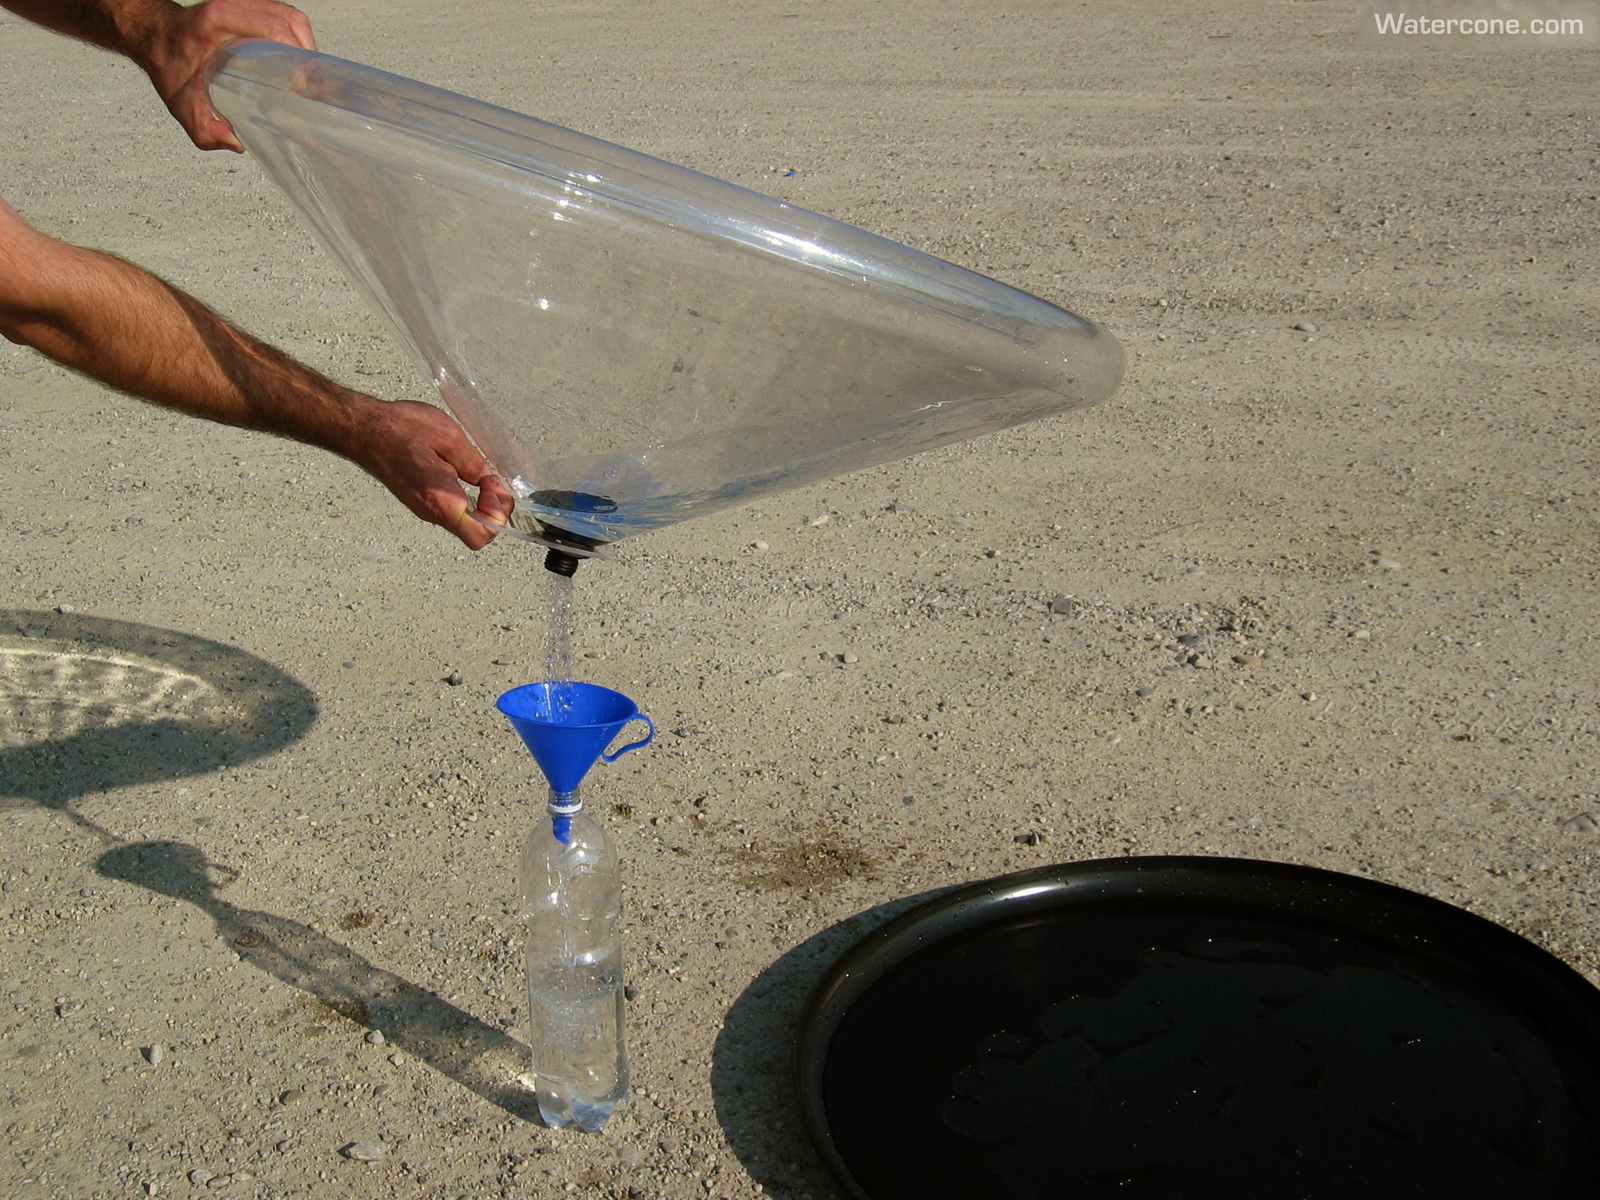 Watercone – An Ingenious Way To Turn Salt Water Into Fresh Water